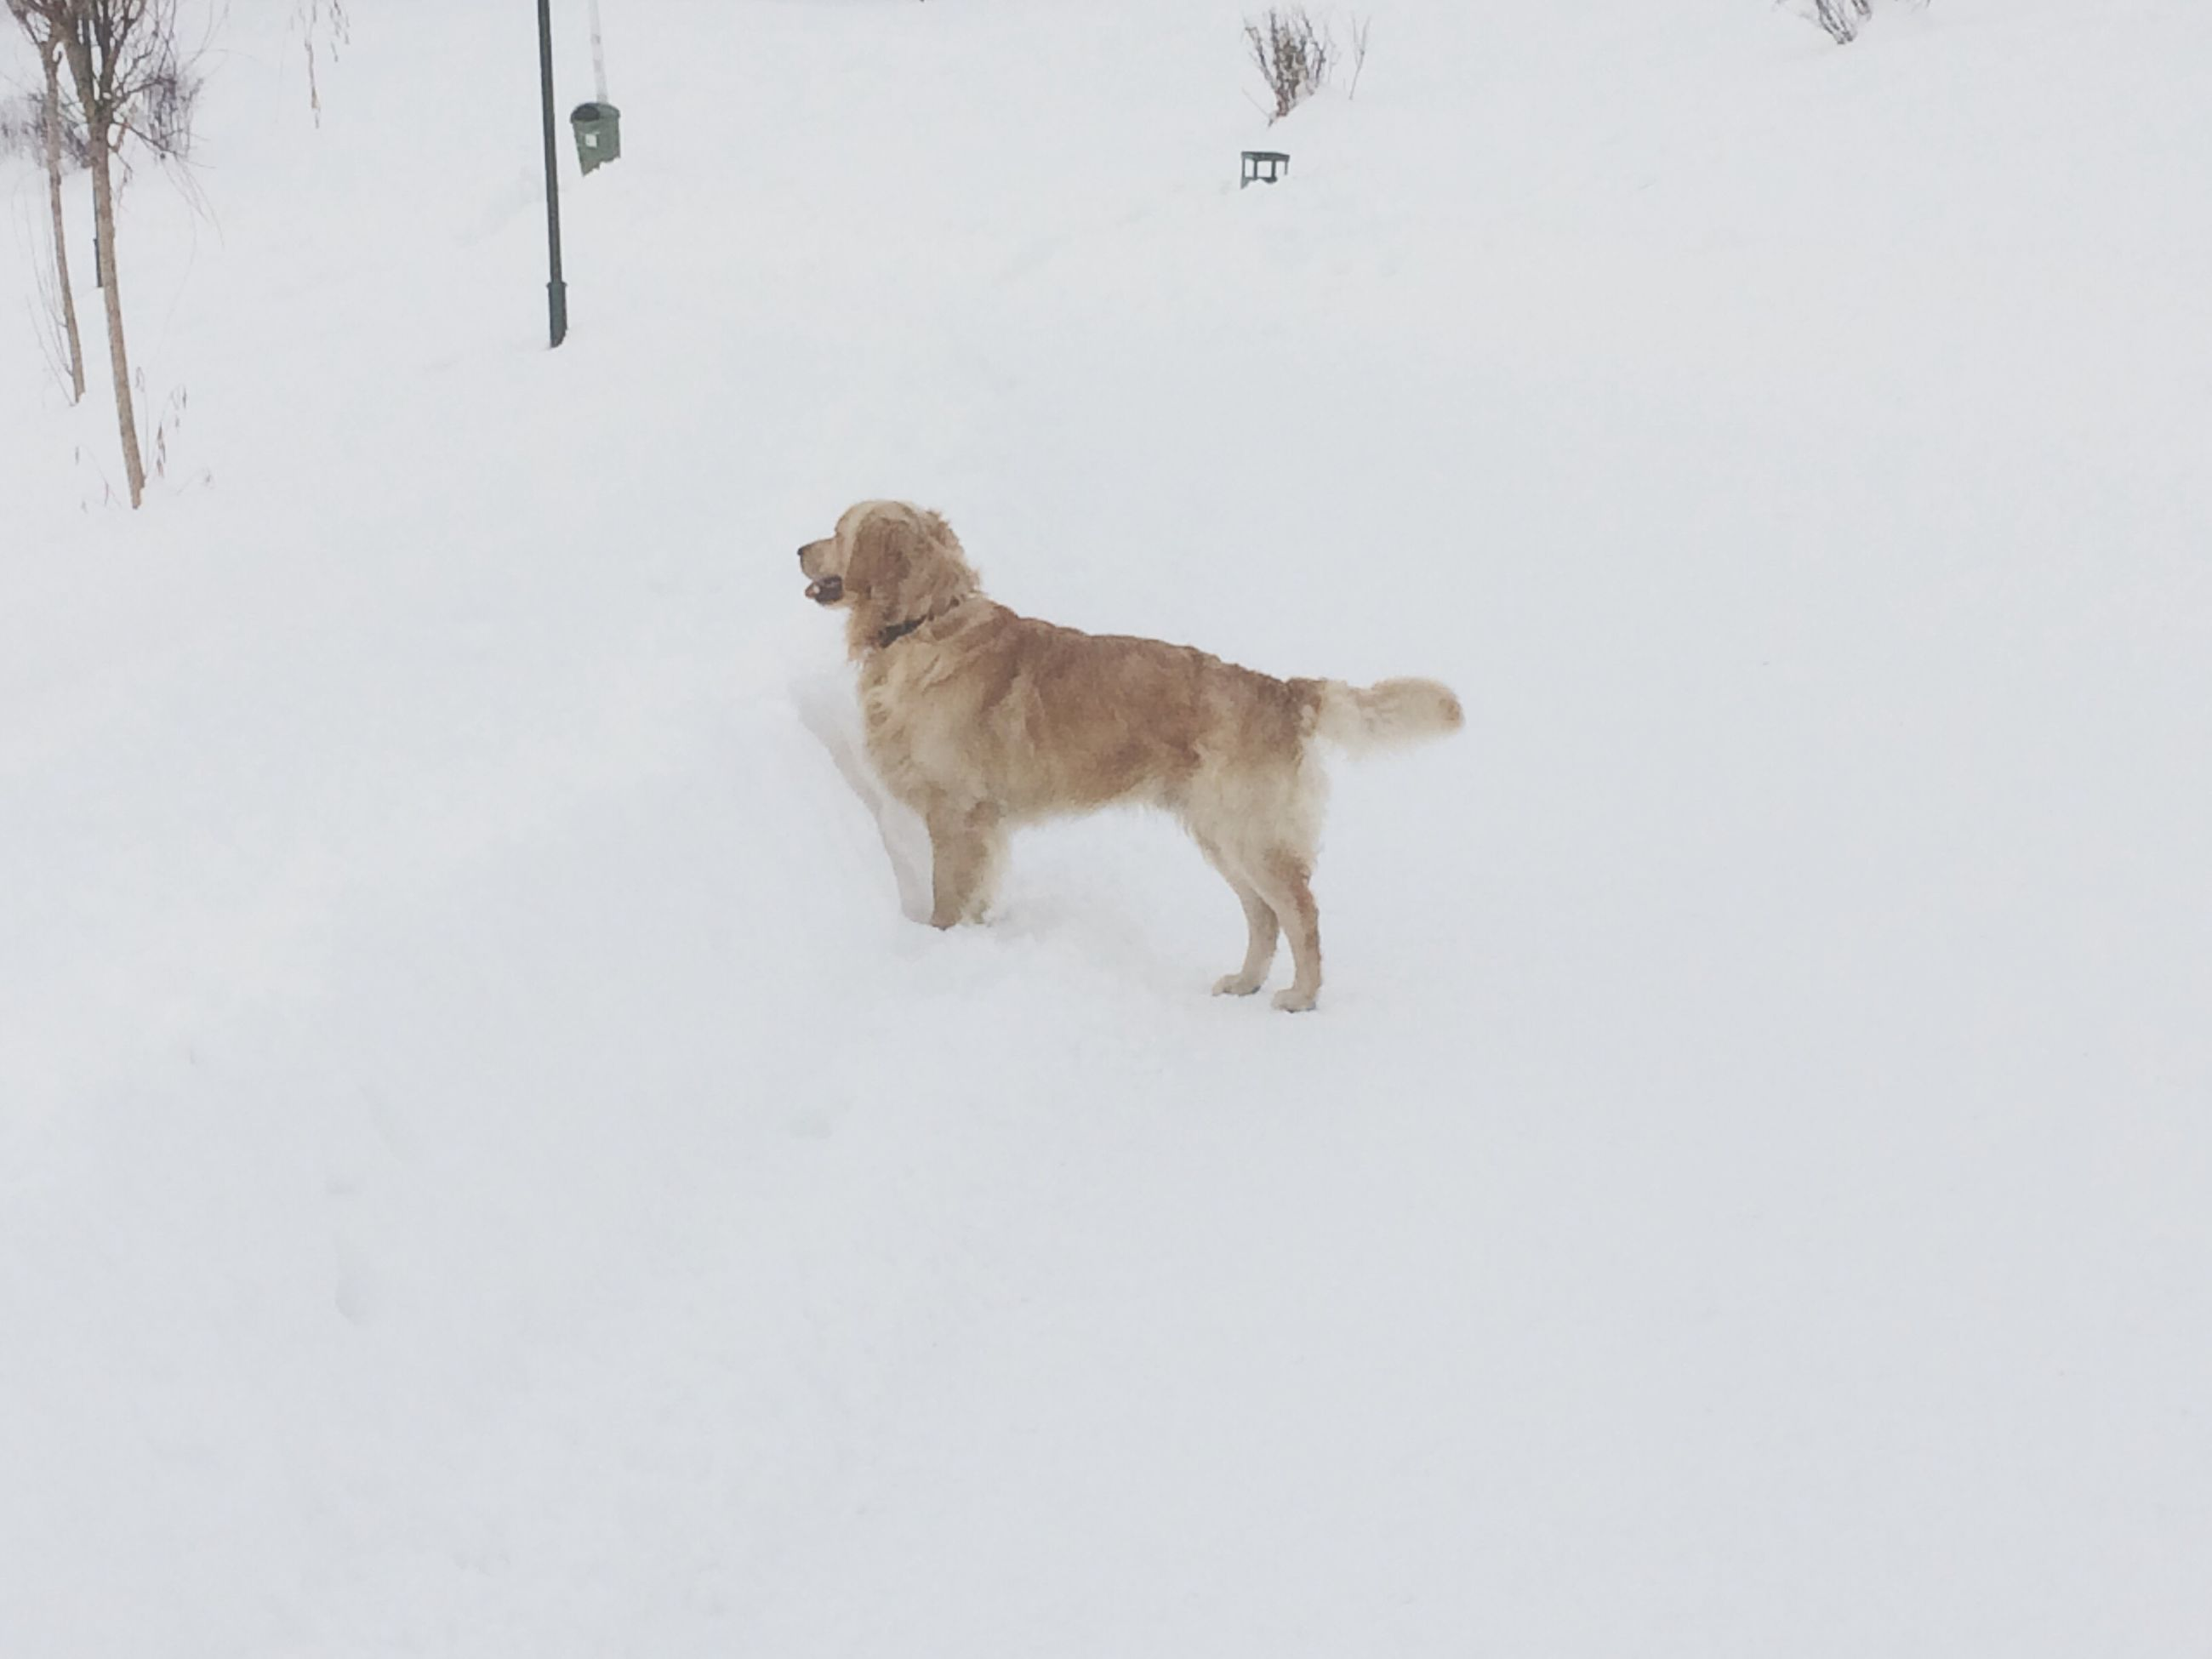 dog, domestic animals, mammal, animal themes, pets, weather, cold temperature, winter, snow, one animal, no people, nature, day, outdoors